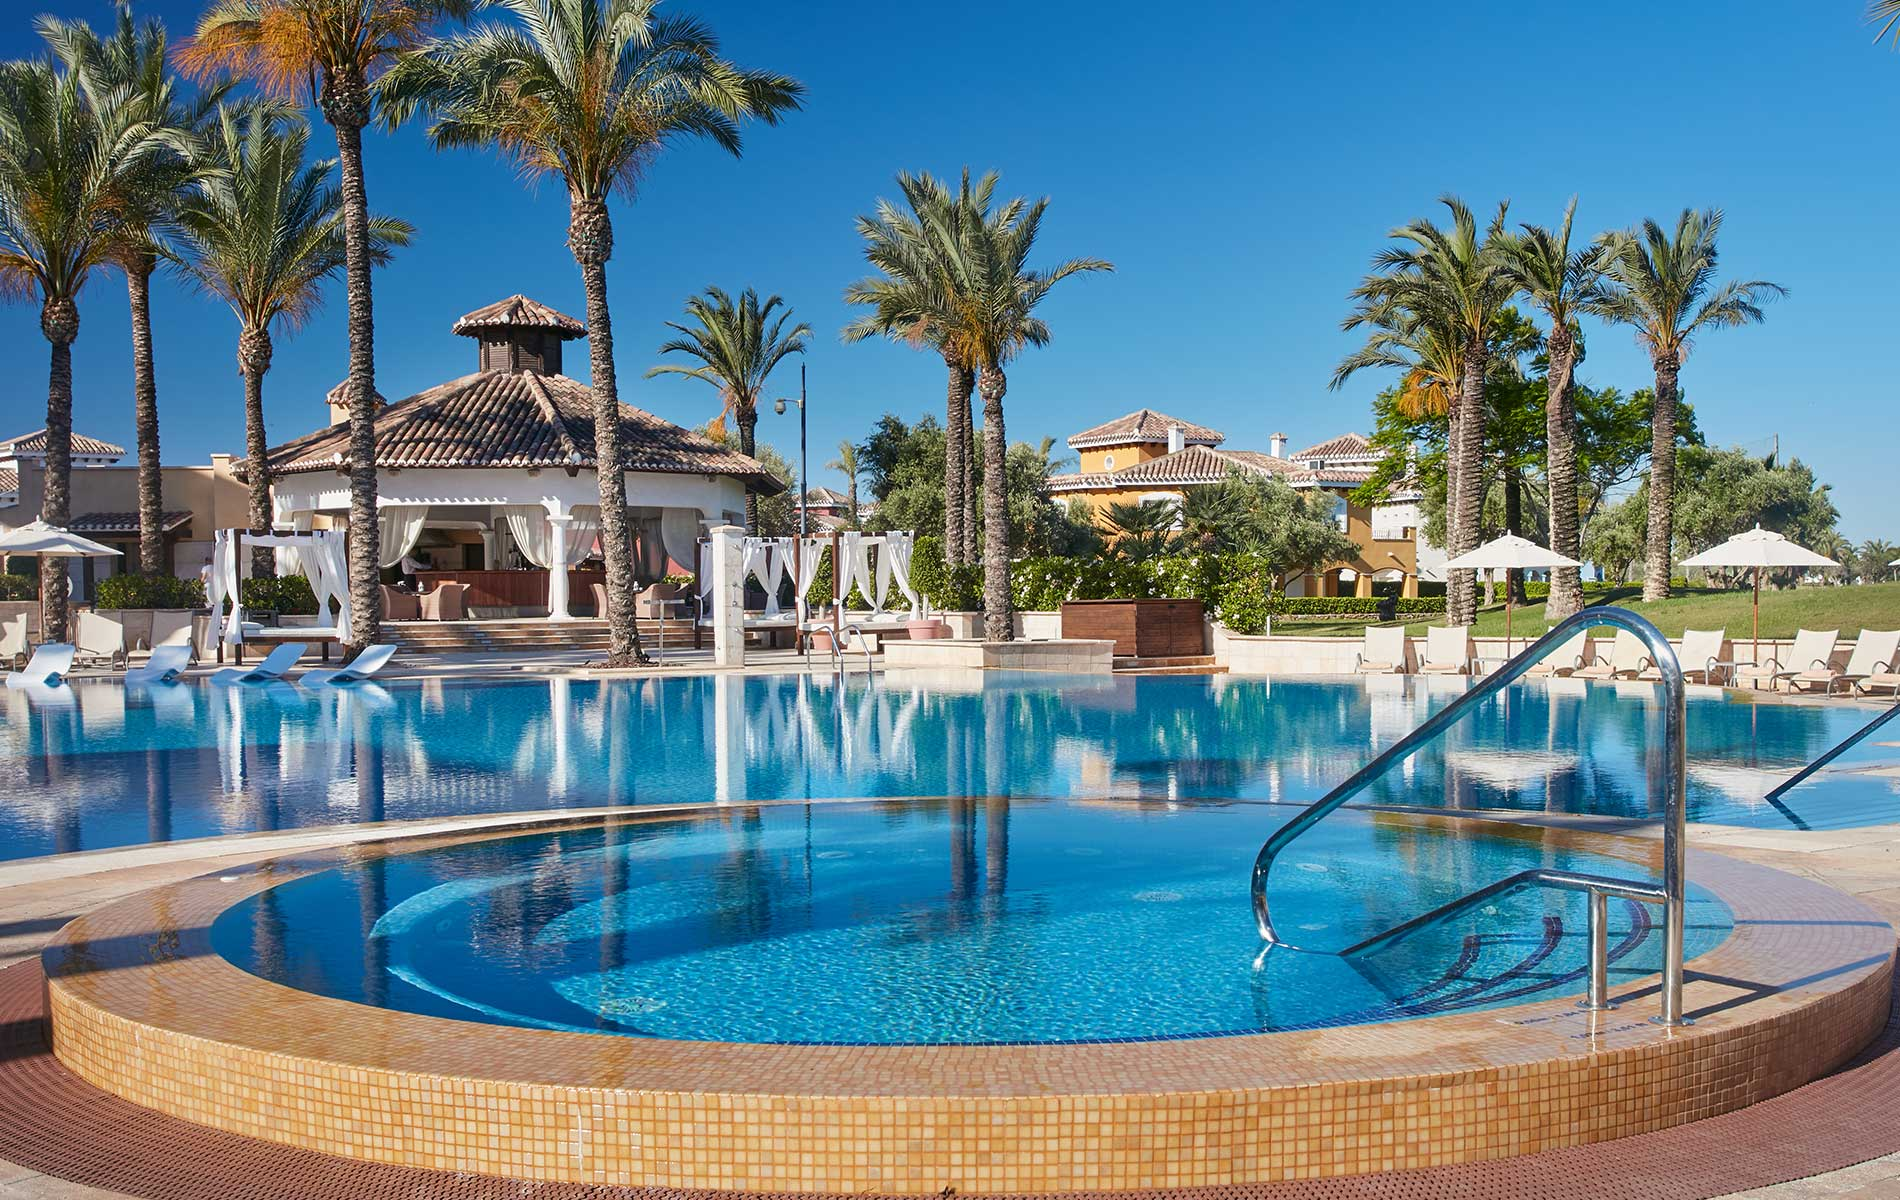 Caleia Mar Menor Spa Hotel